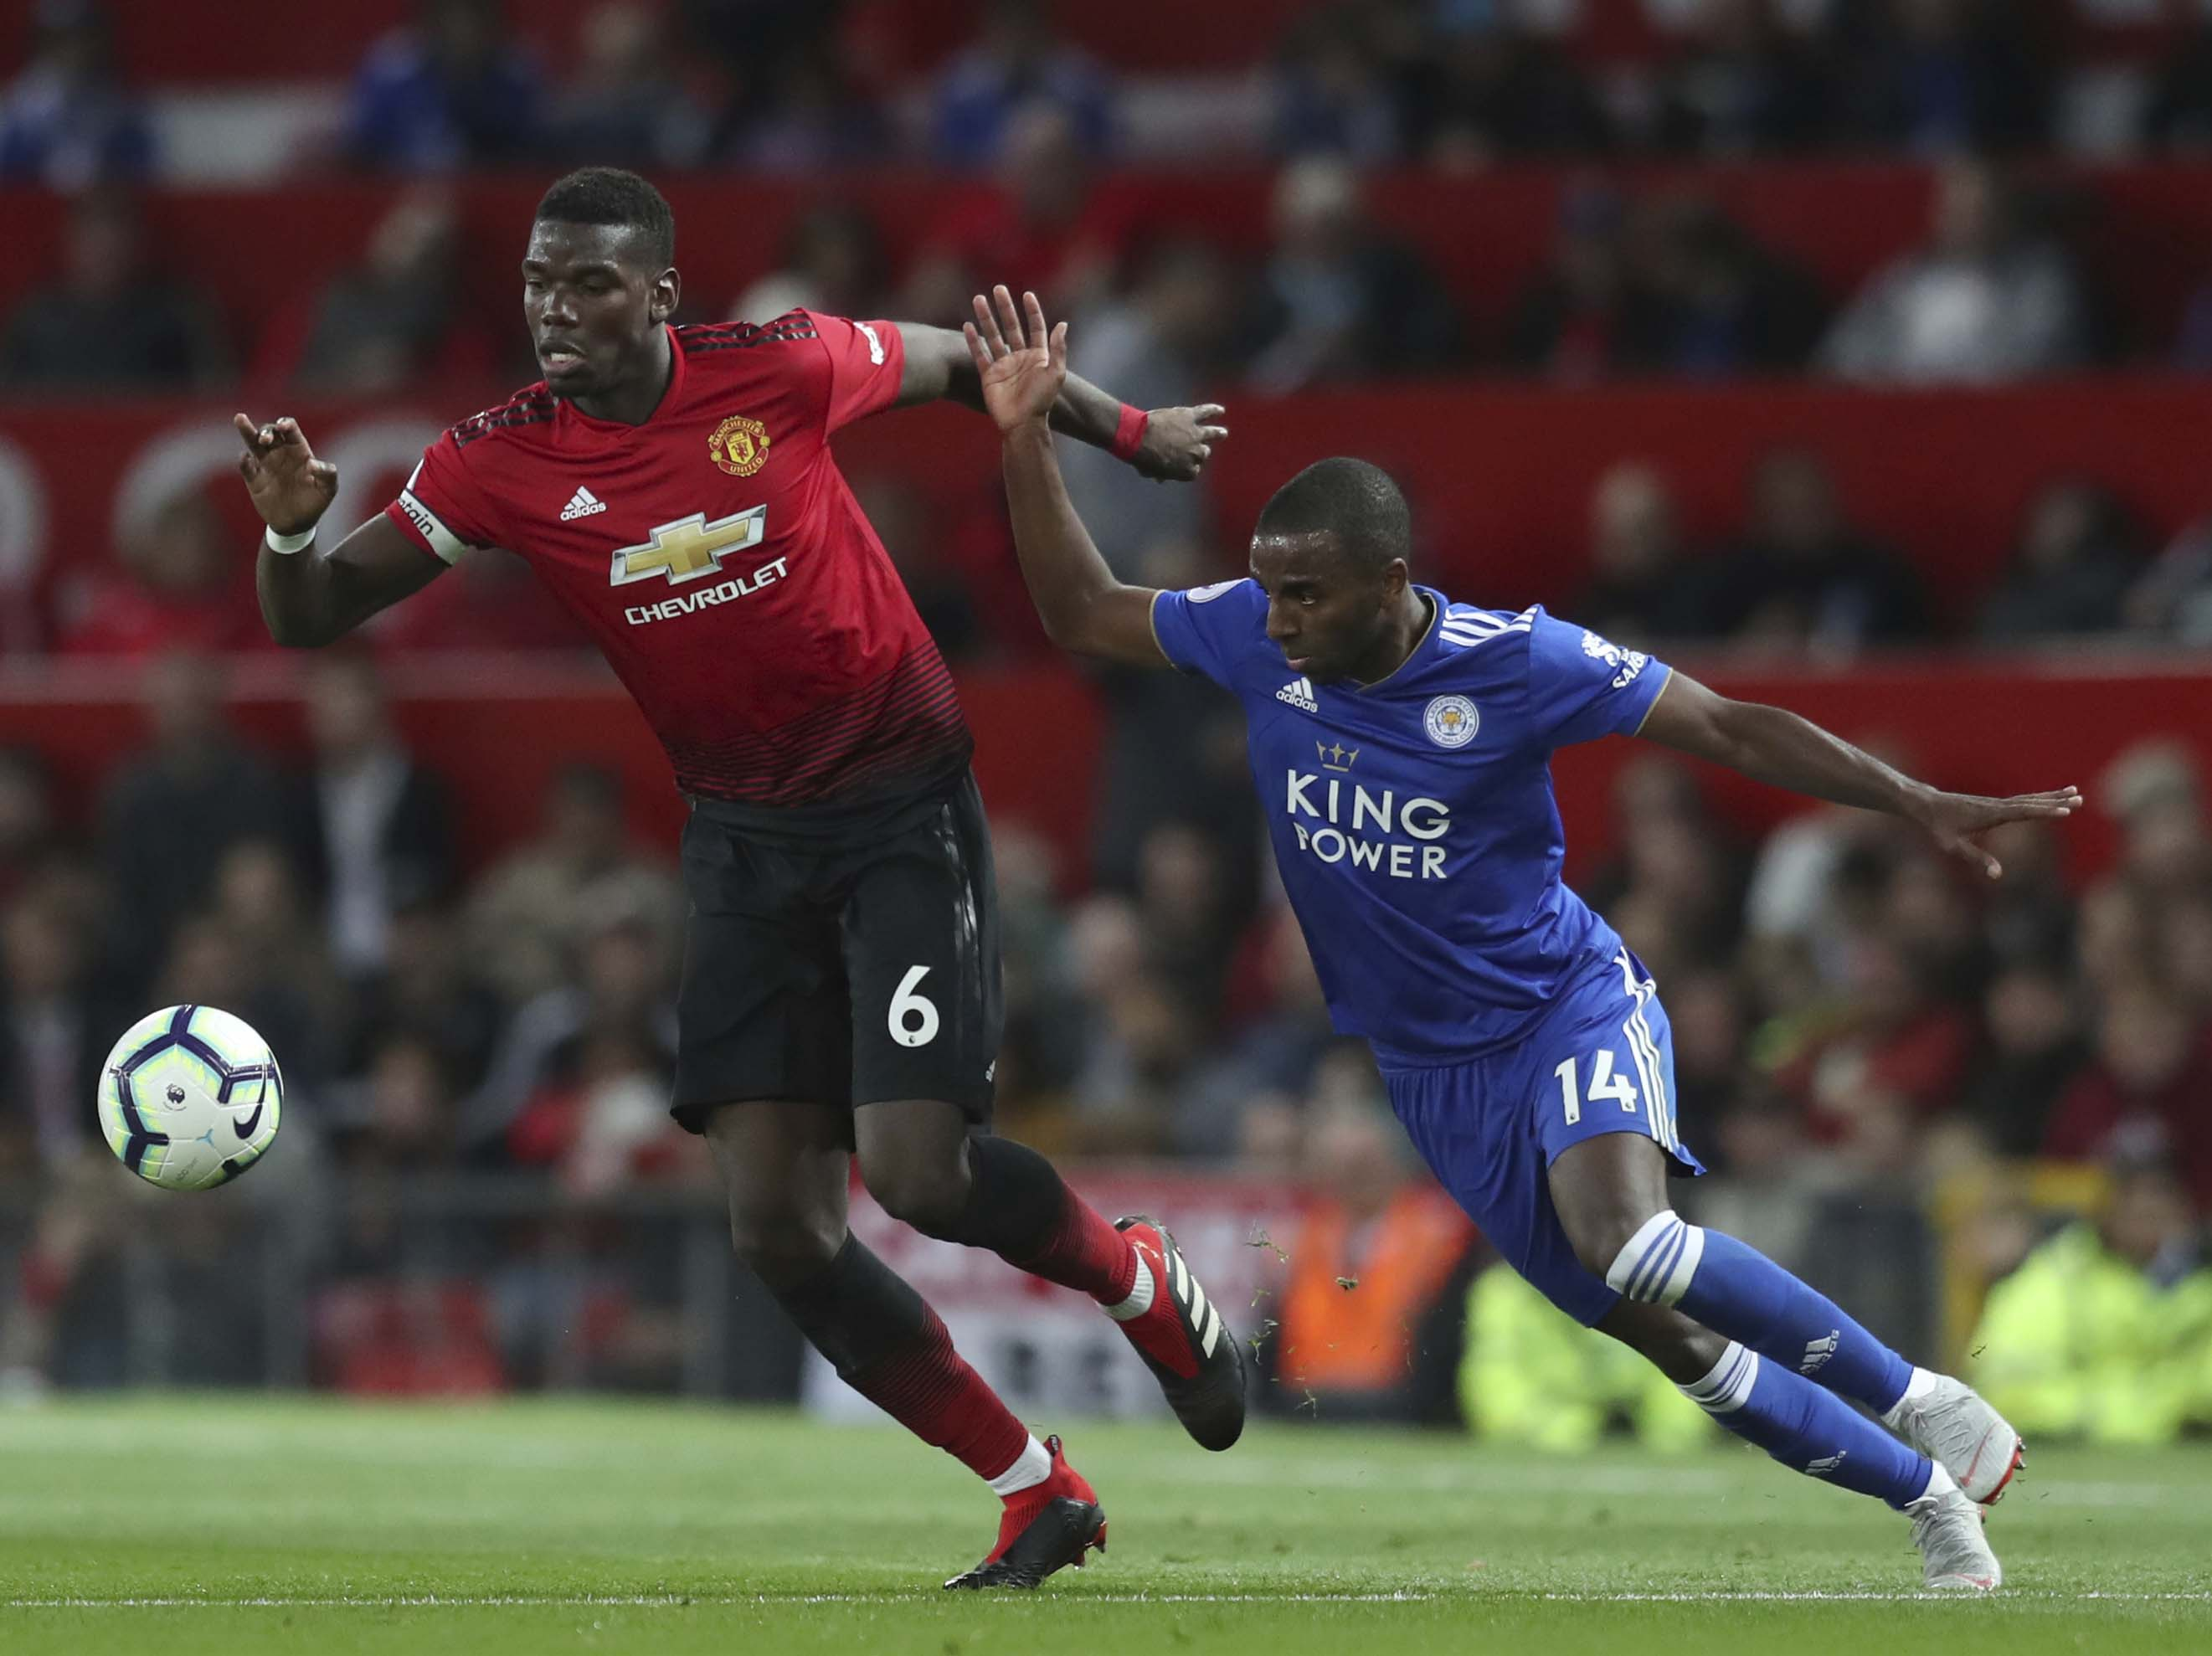 Manchester United's Paul Pogba (left) vies for the ball with Leicester City's Ricardo Pereira during the English Premier League soccer match between Manchester United and Leicester City at Old Trafford in Manchester, England on Friday.